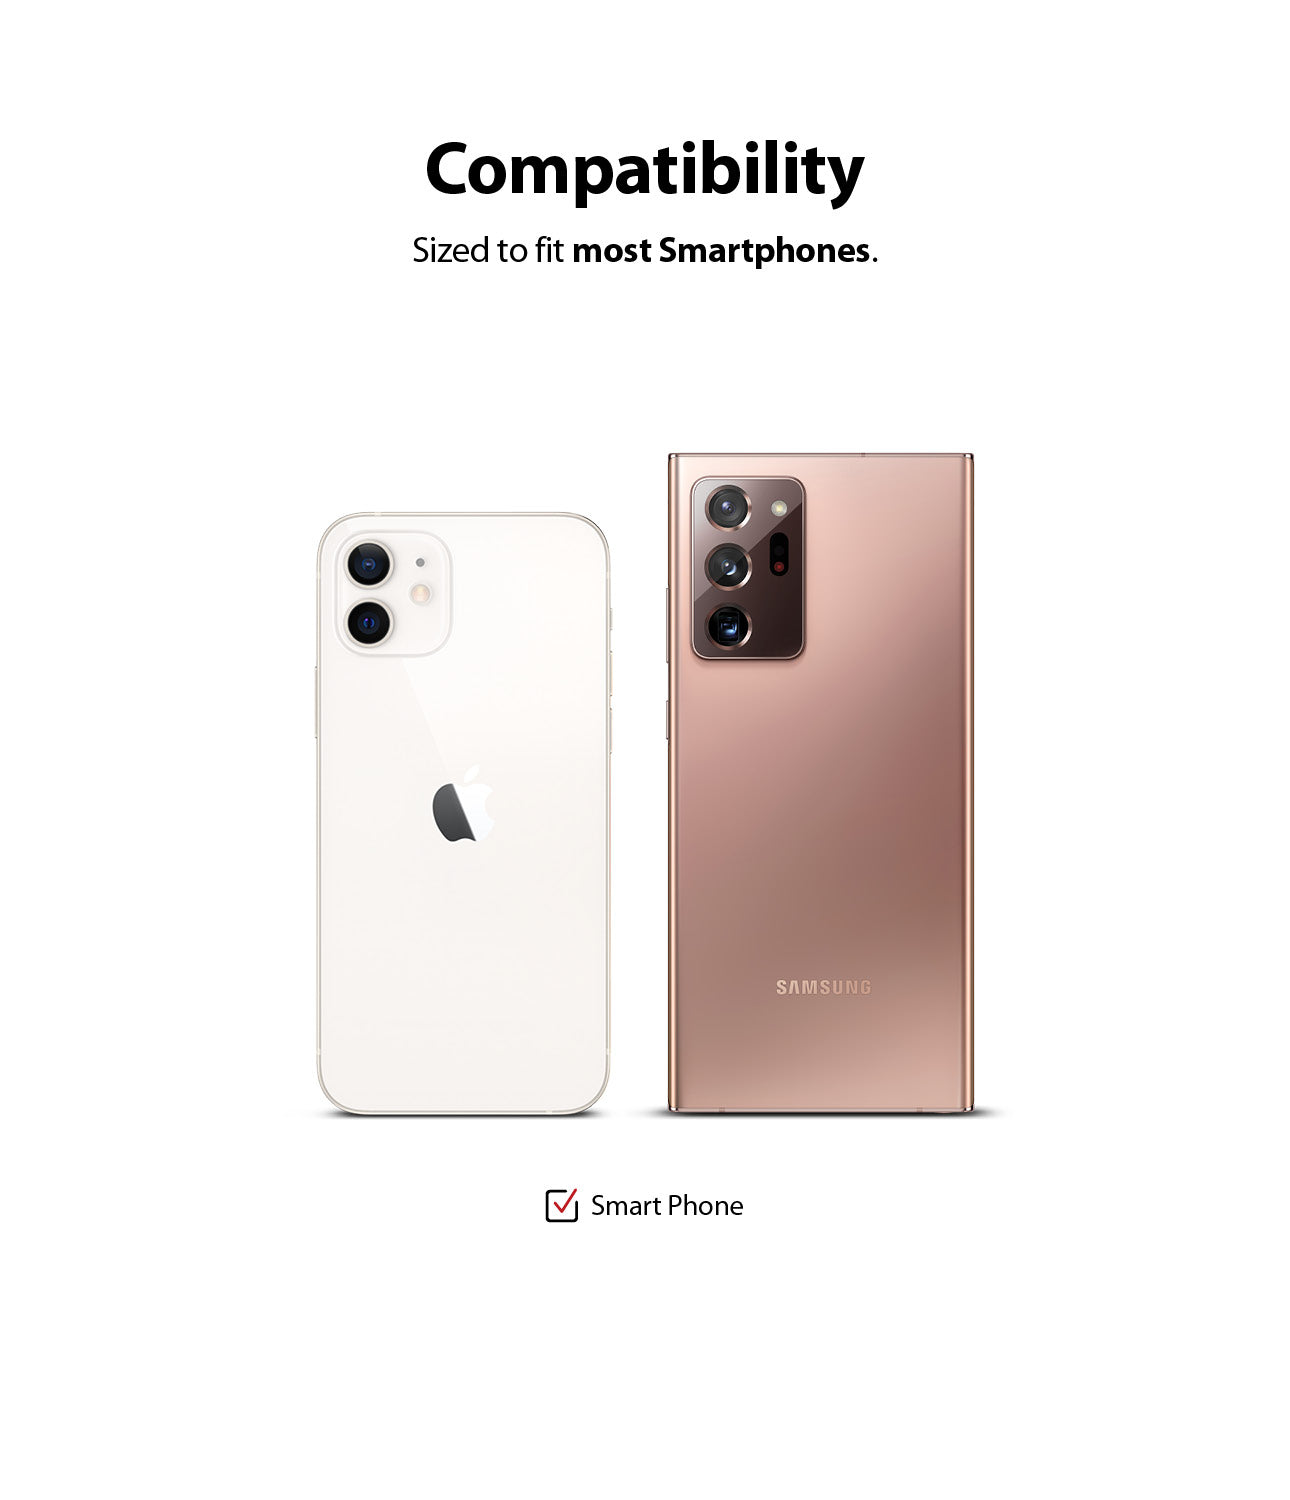 compatible with most smartphones